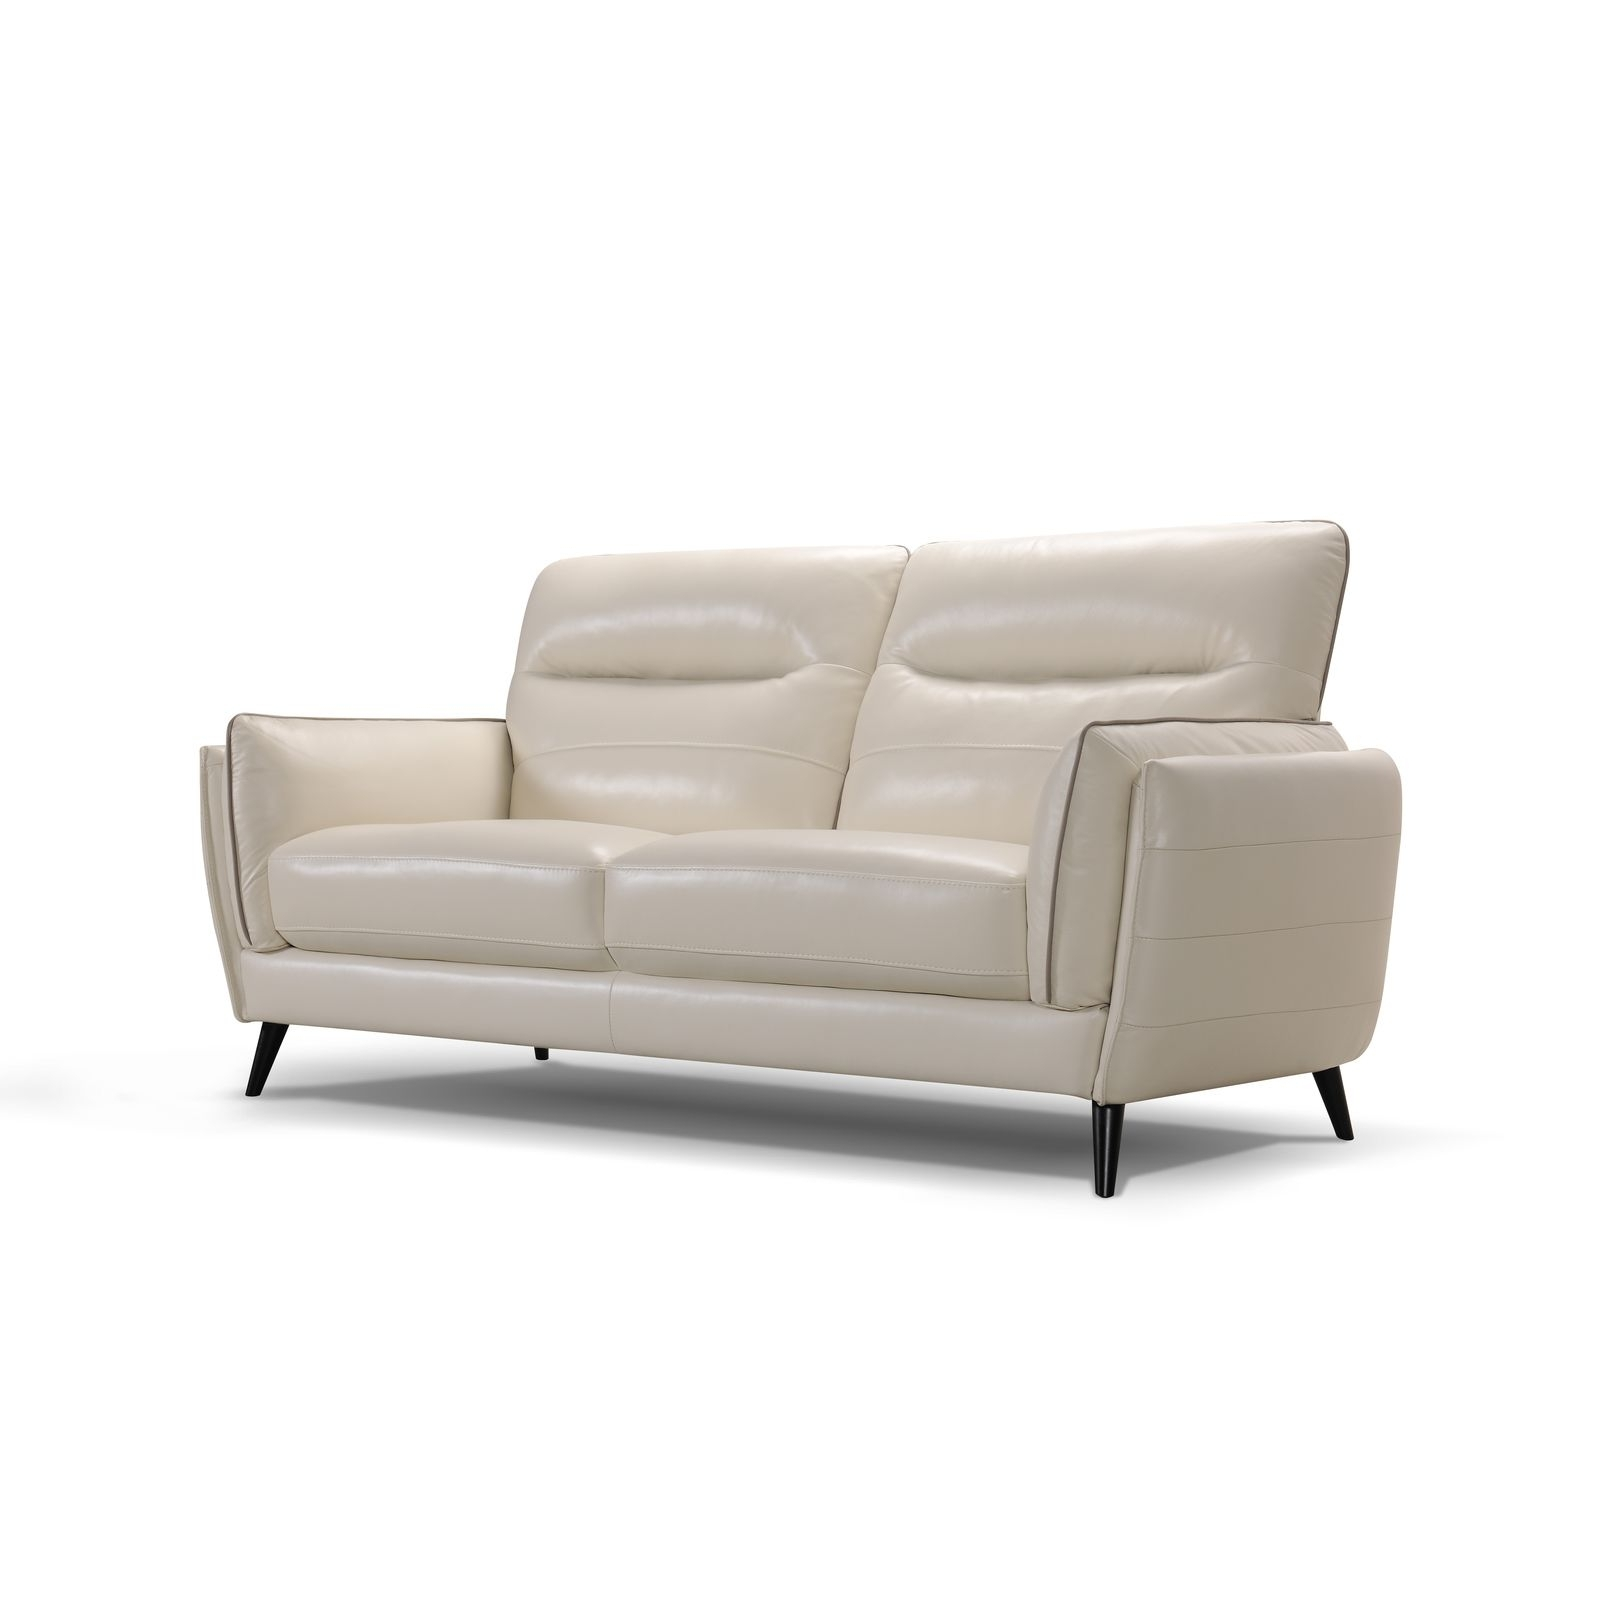 Favorite Janka 3 Seater (fl) C15 Mto Full Leather Sofa – Sofa & Armchairs For 3 Seater Leather Sofas (View 20 of 20)